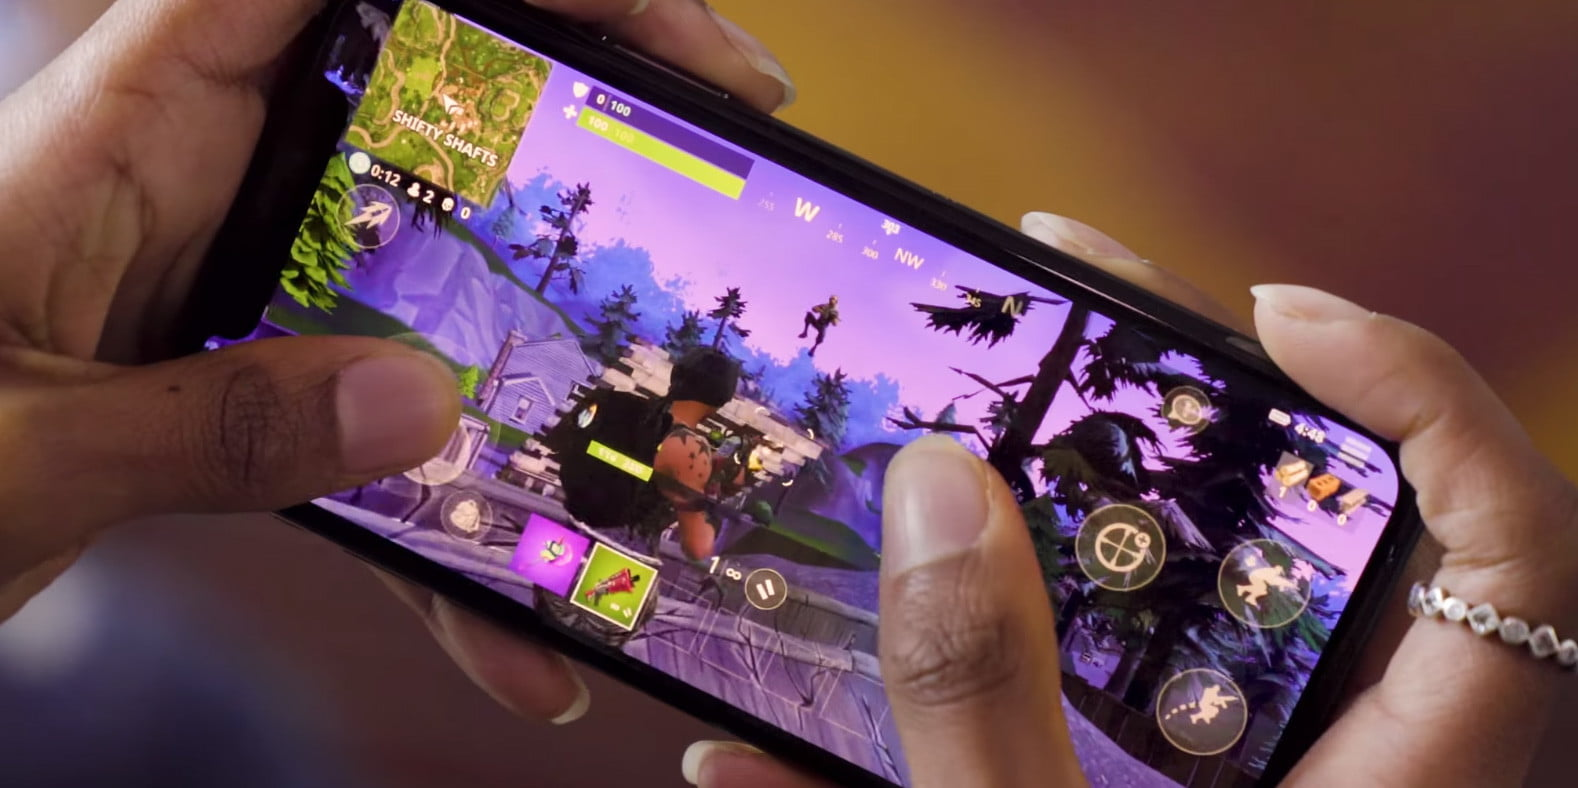 new fortnite mobile features coming soon 60 fps controller support and more digital trends - fortnite android mit controller